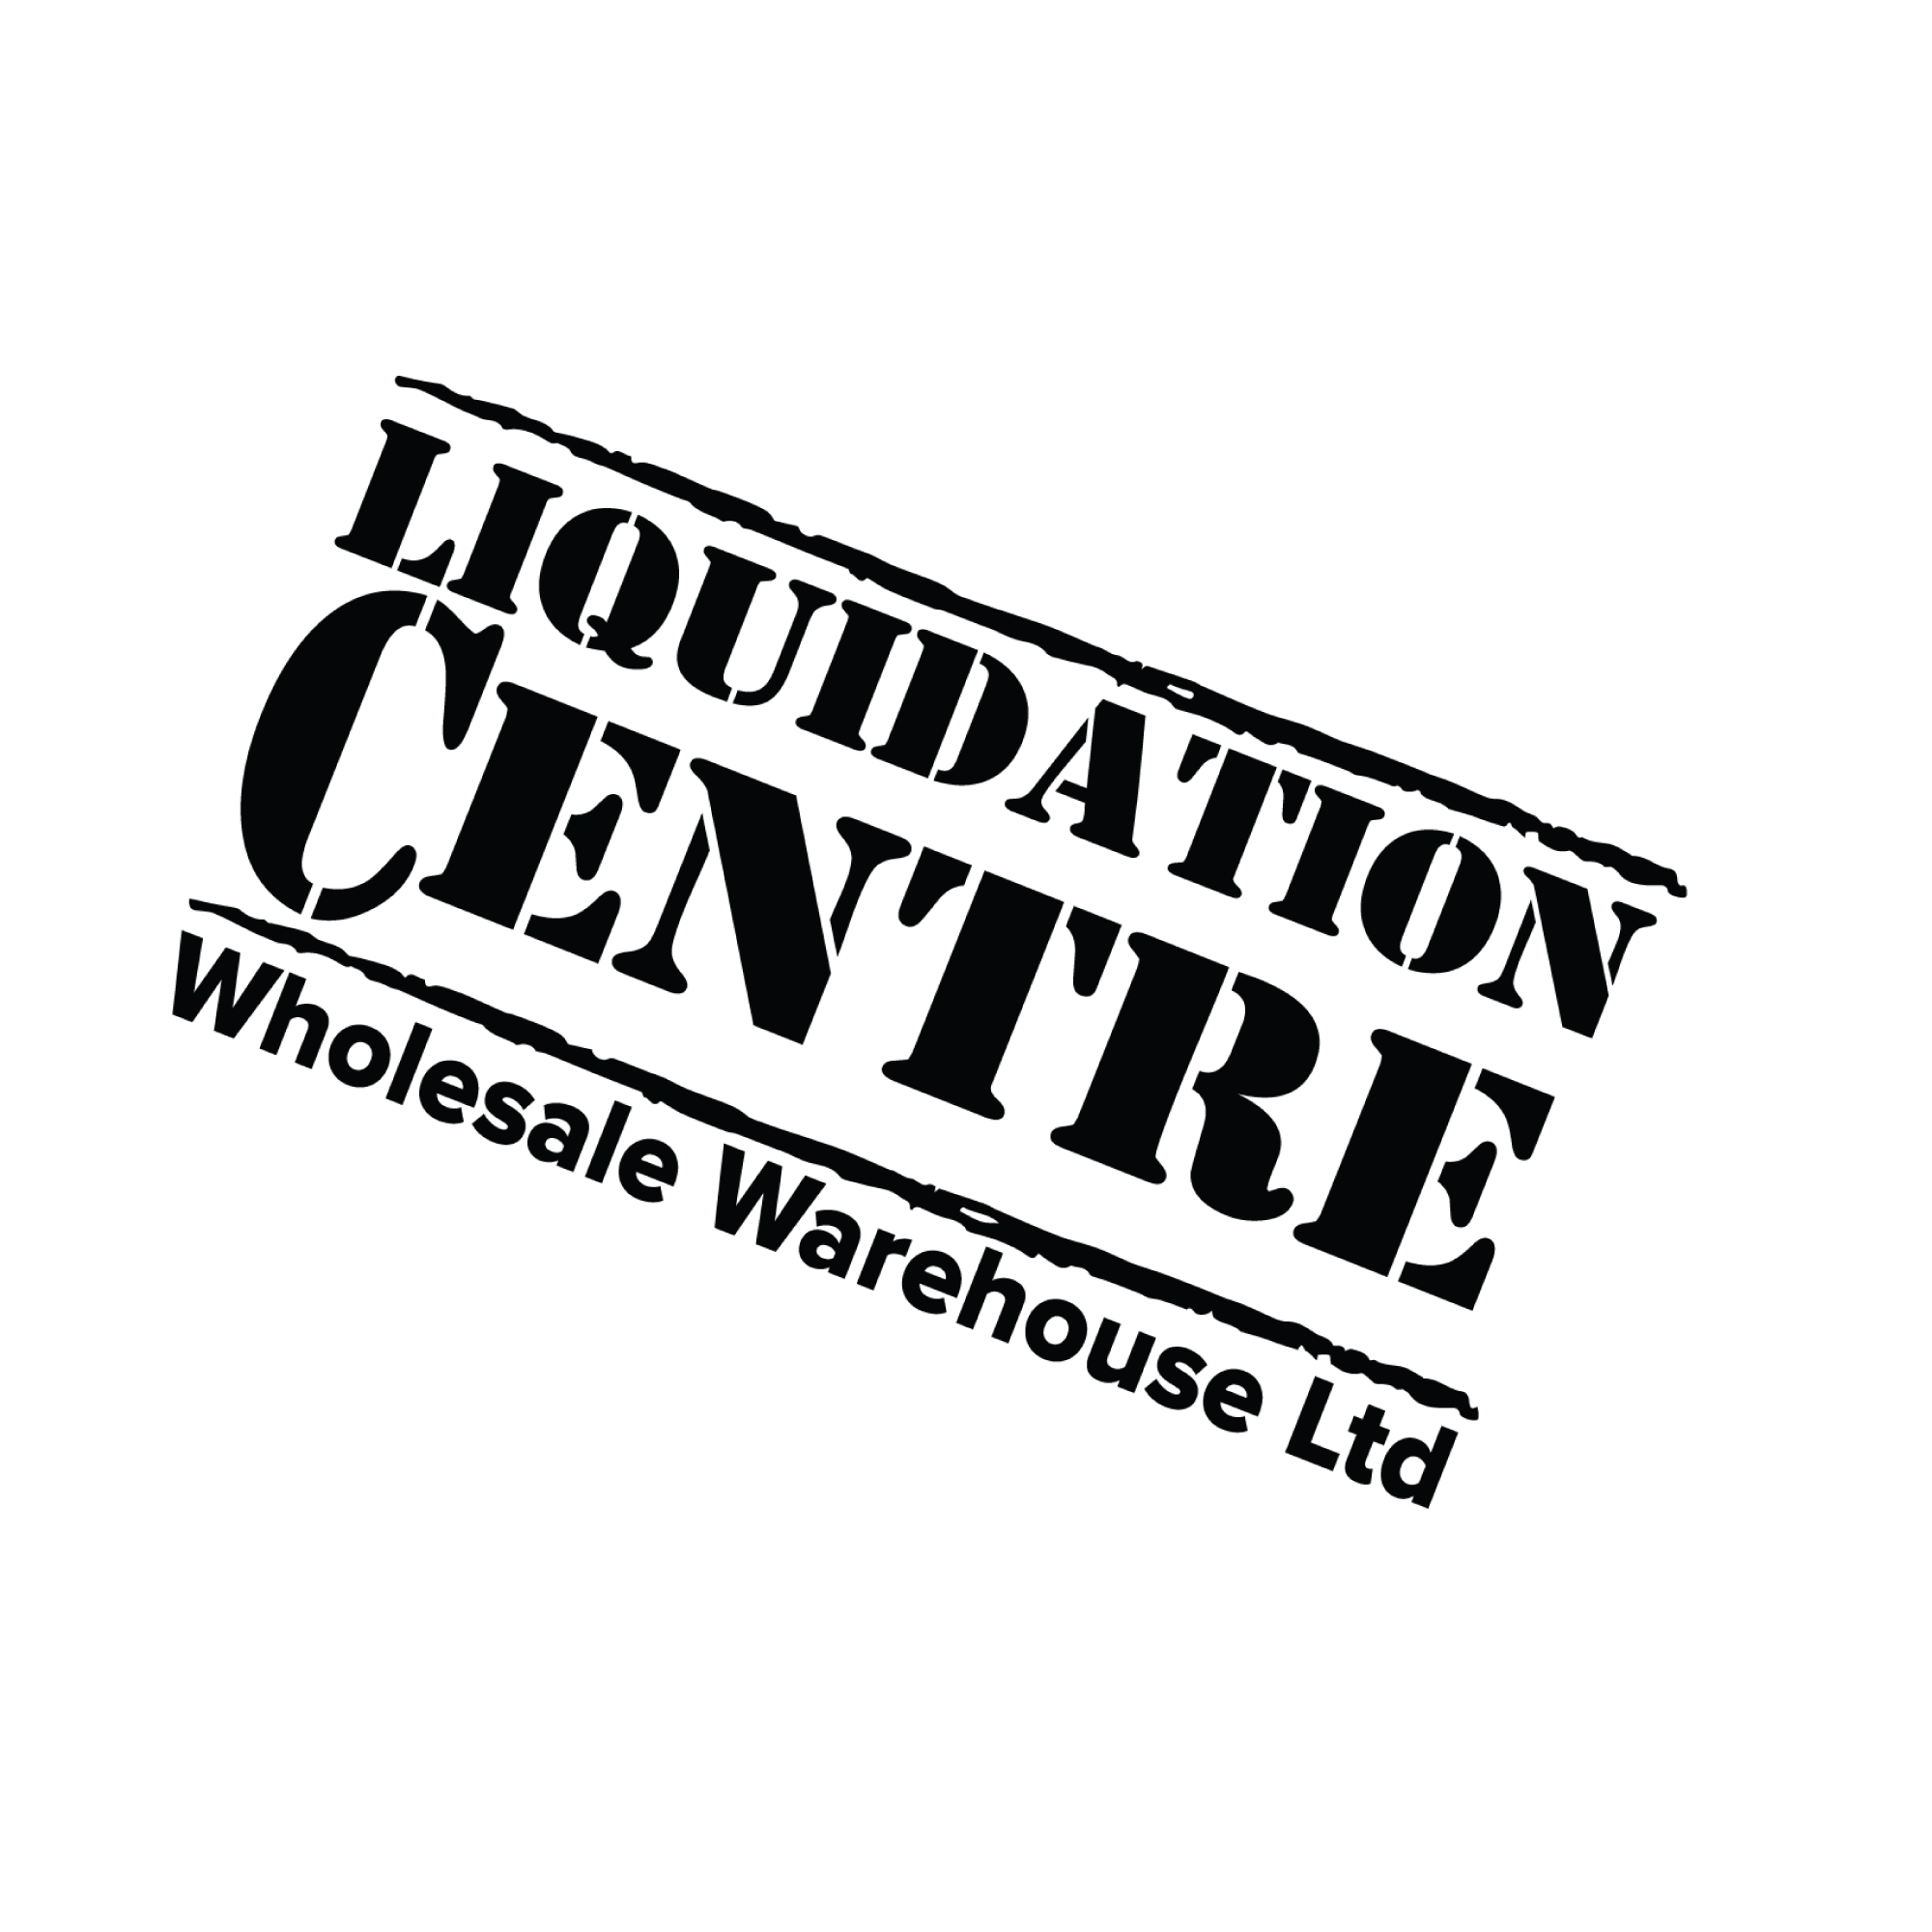 Wholesale Warehouse Ltd